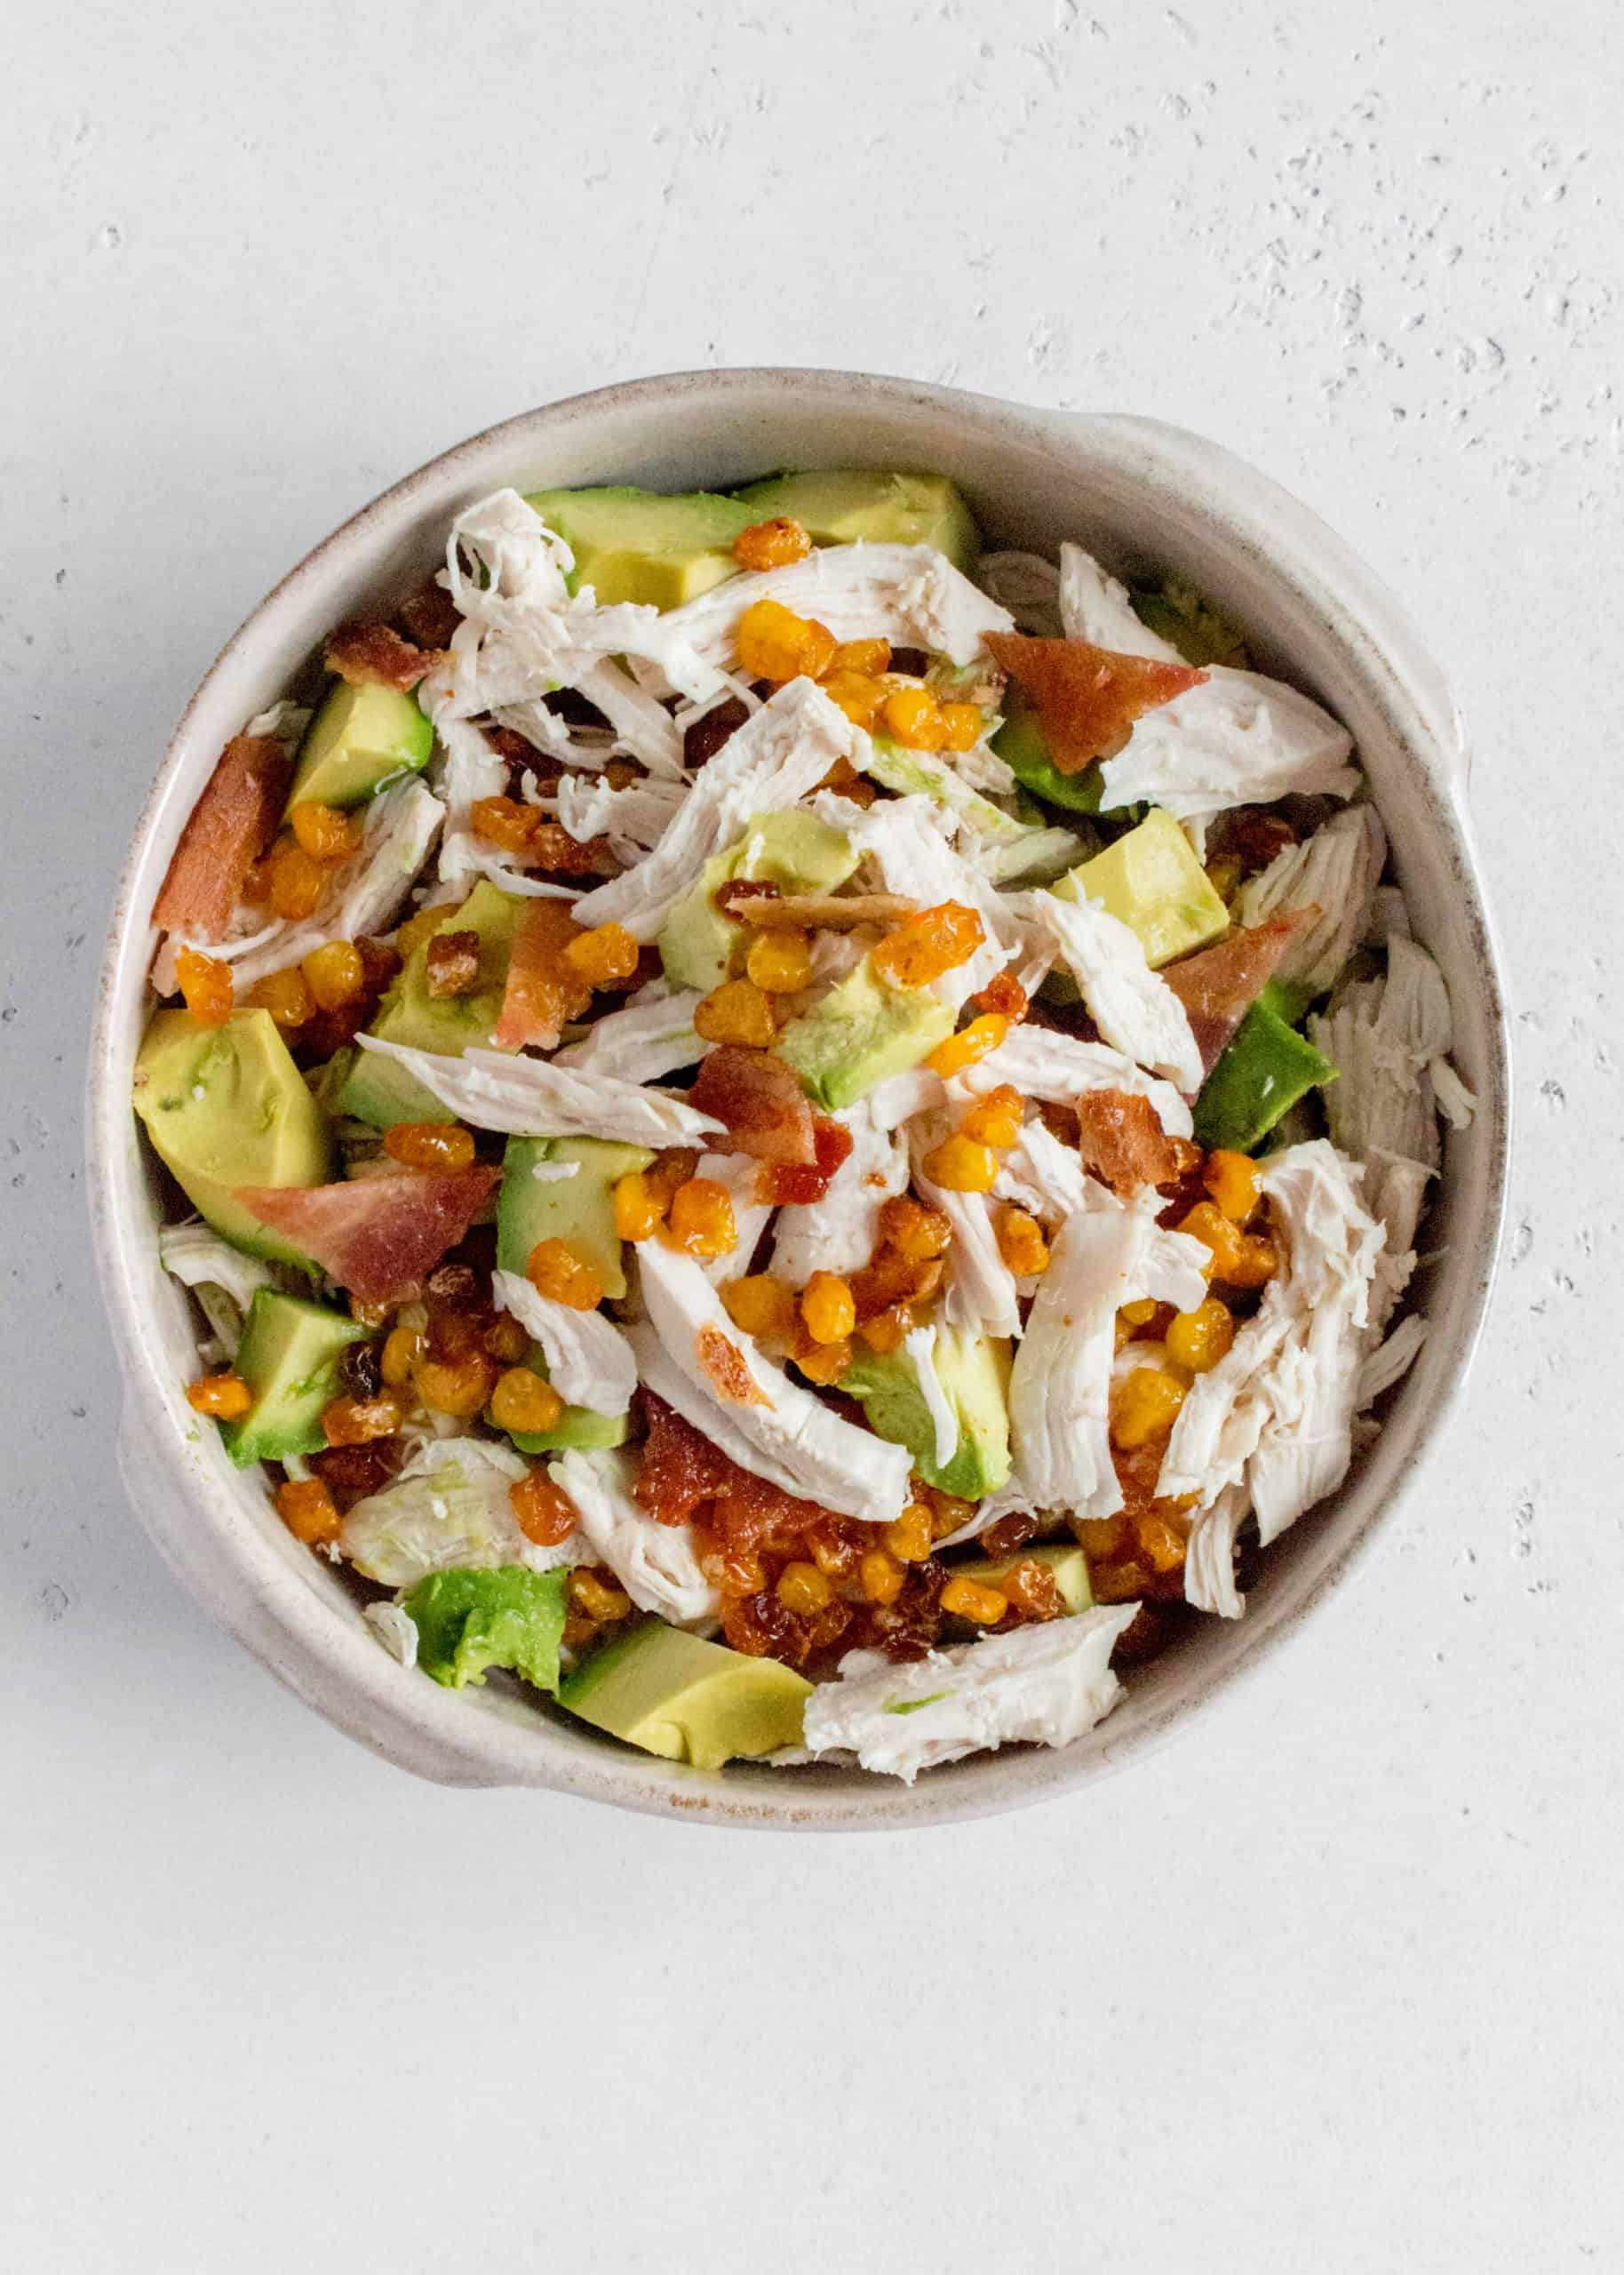 This Simple Avocado Bacon Corn Chicken Salad is perfect summer salad. Easy to put together and super versatile, make this salad for your next bbq!